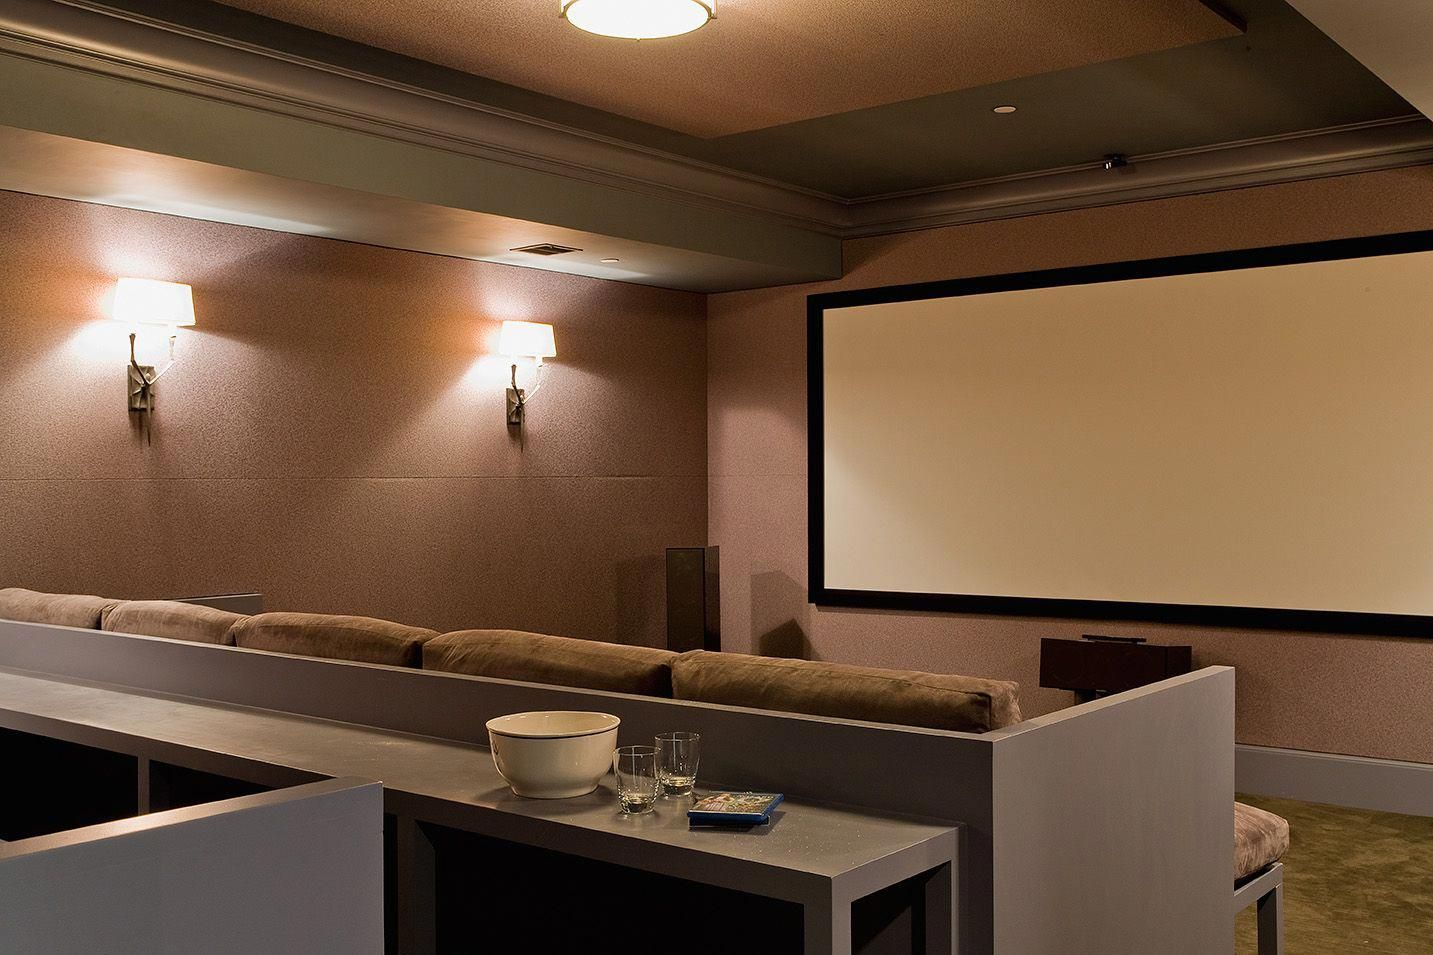 Home Theater Installation By Audio Concepts In Boston North Attleboro Ma Photo Michael